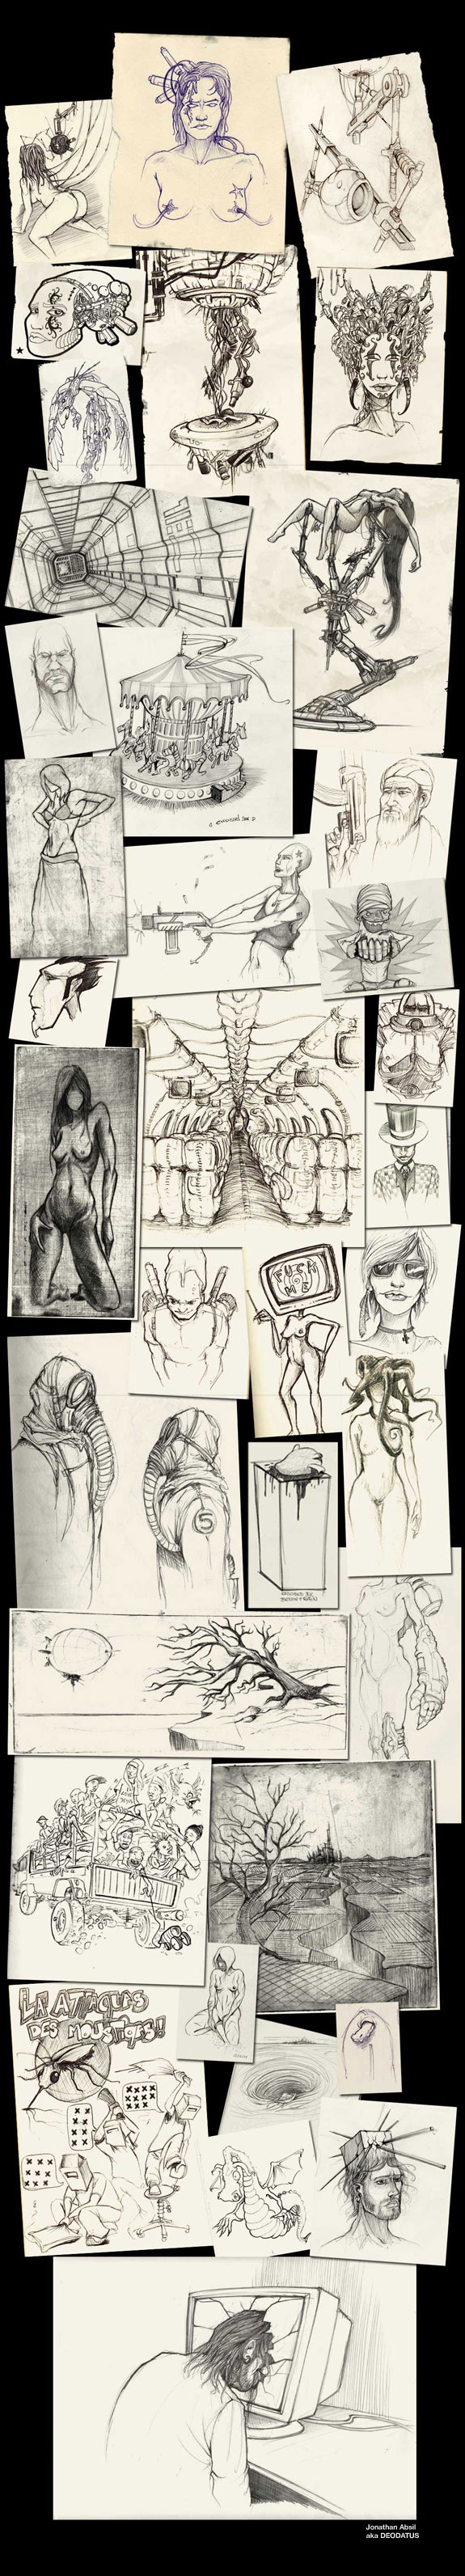 Sketches 2006 – 2007